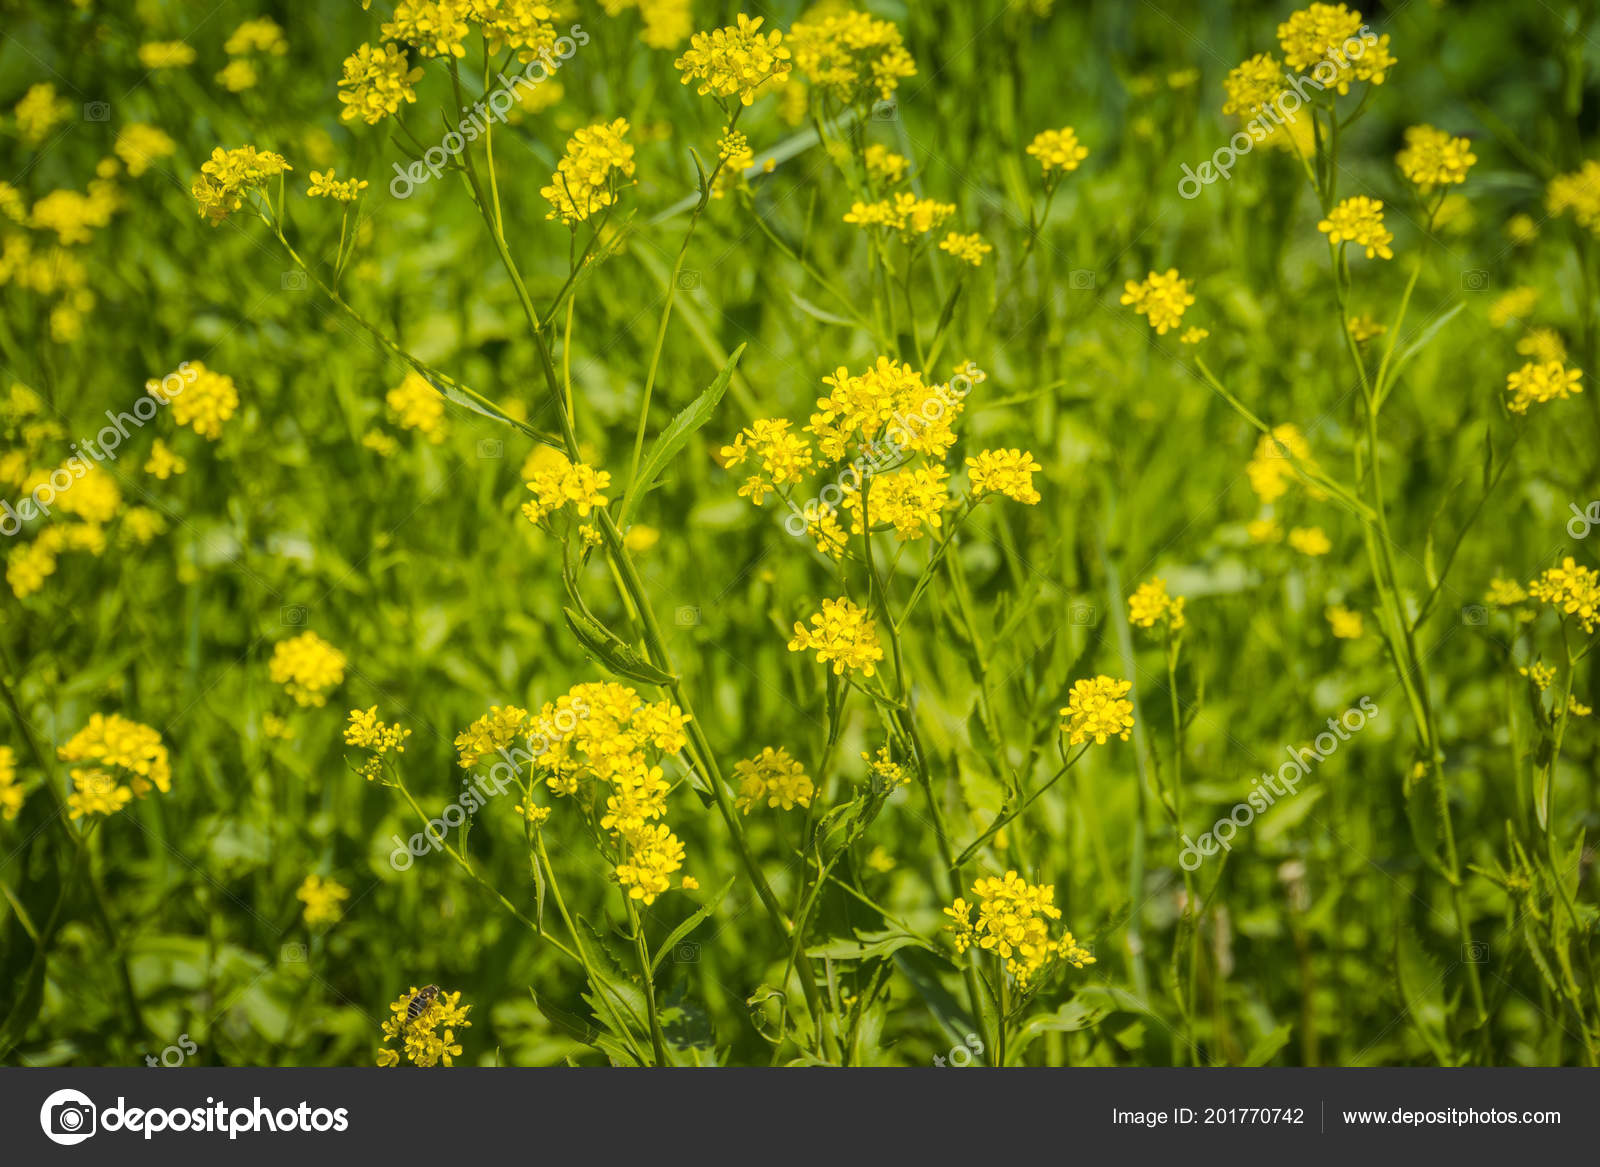 Wild Yellow Flowers Blooming Summer Grass Field Stock Photo